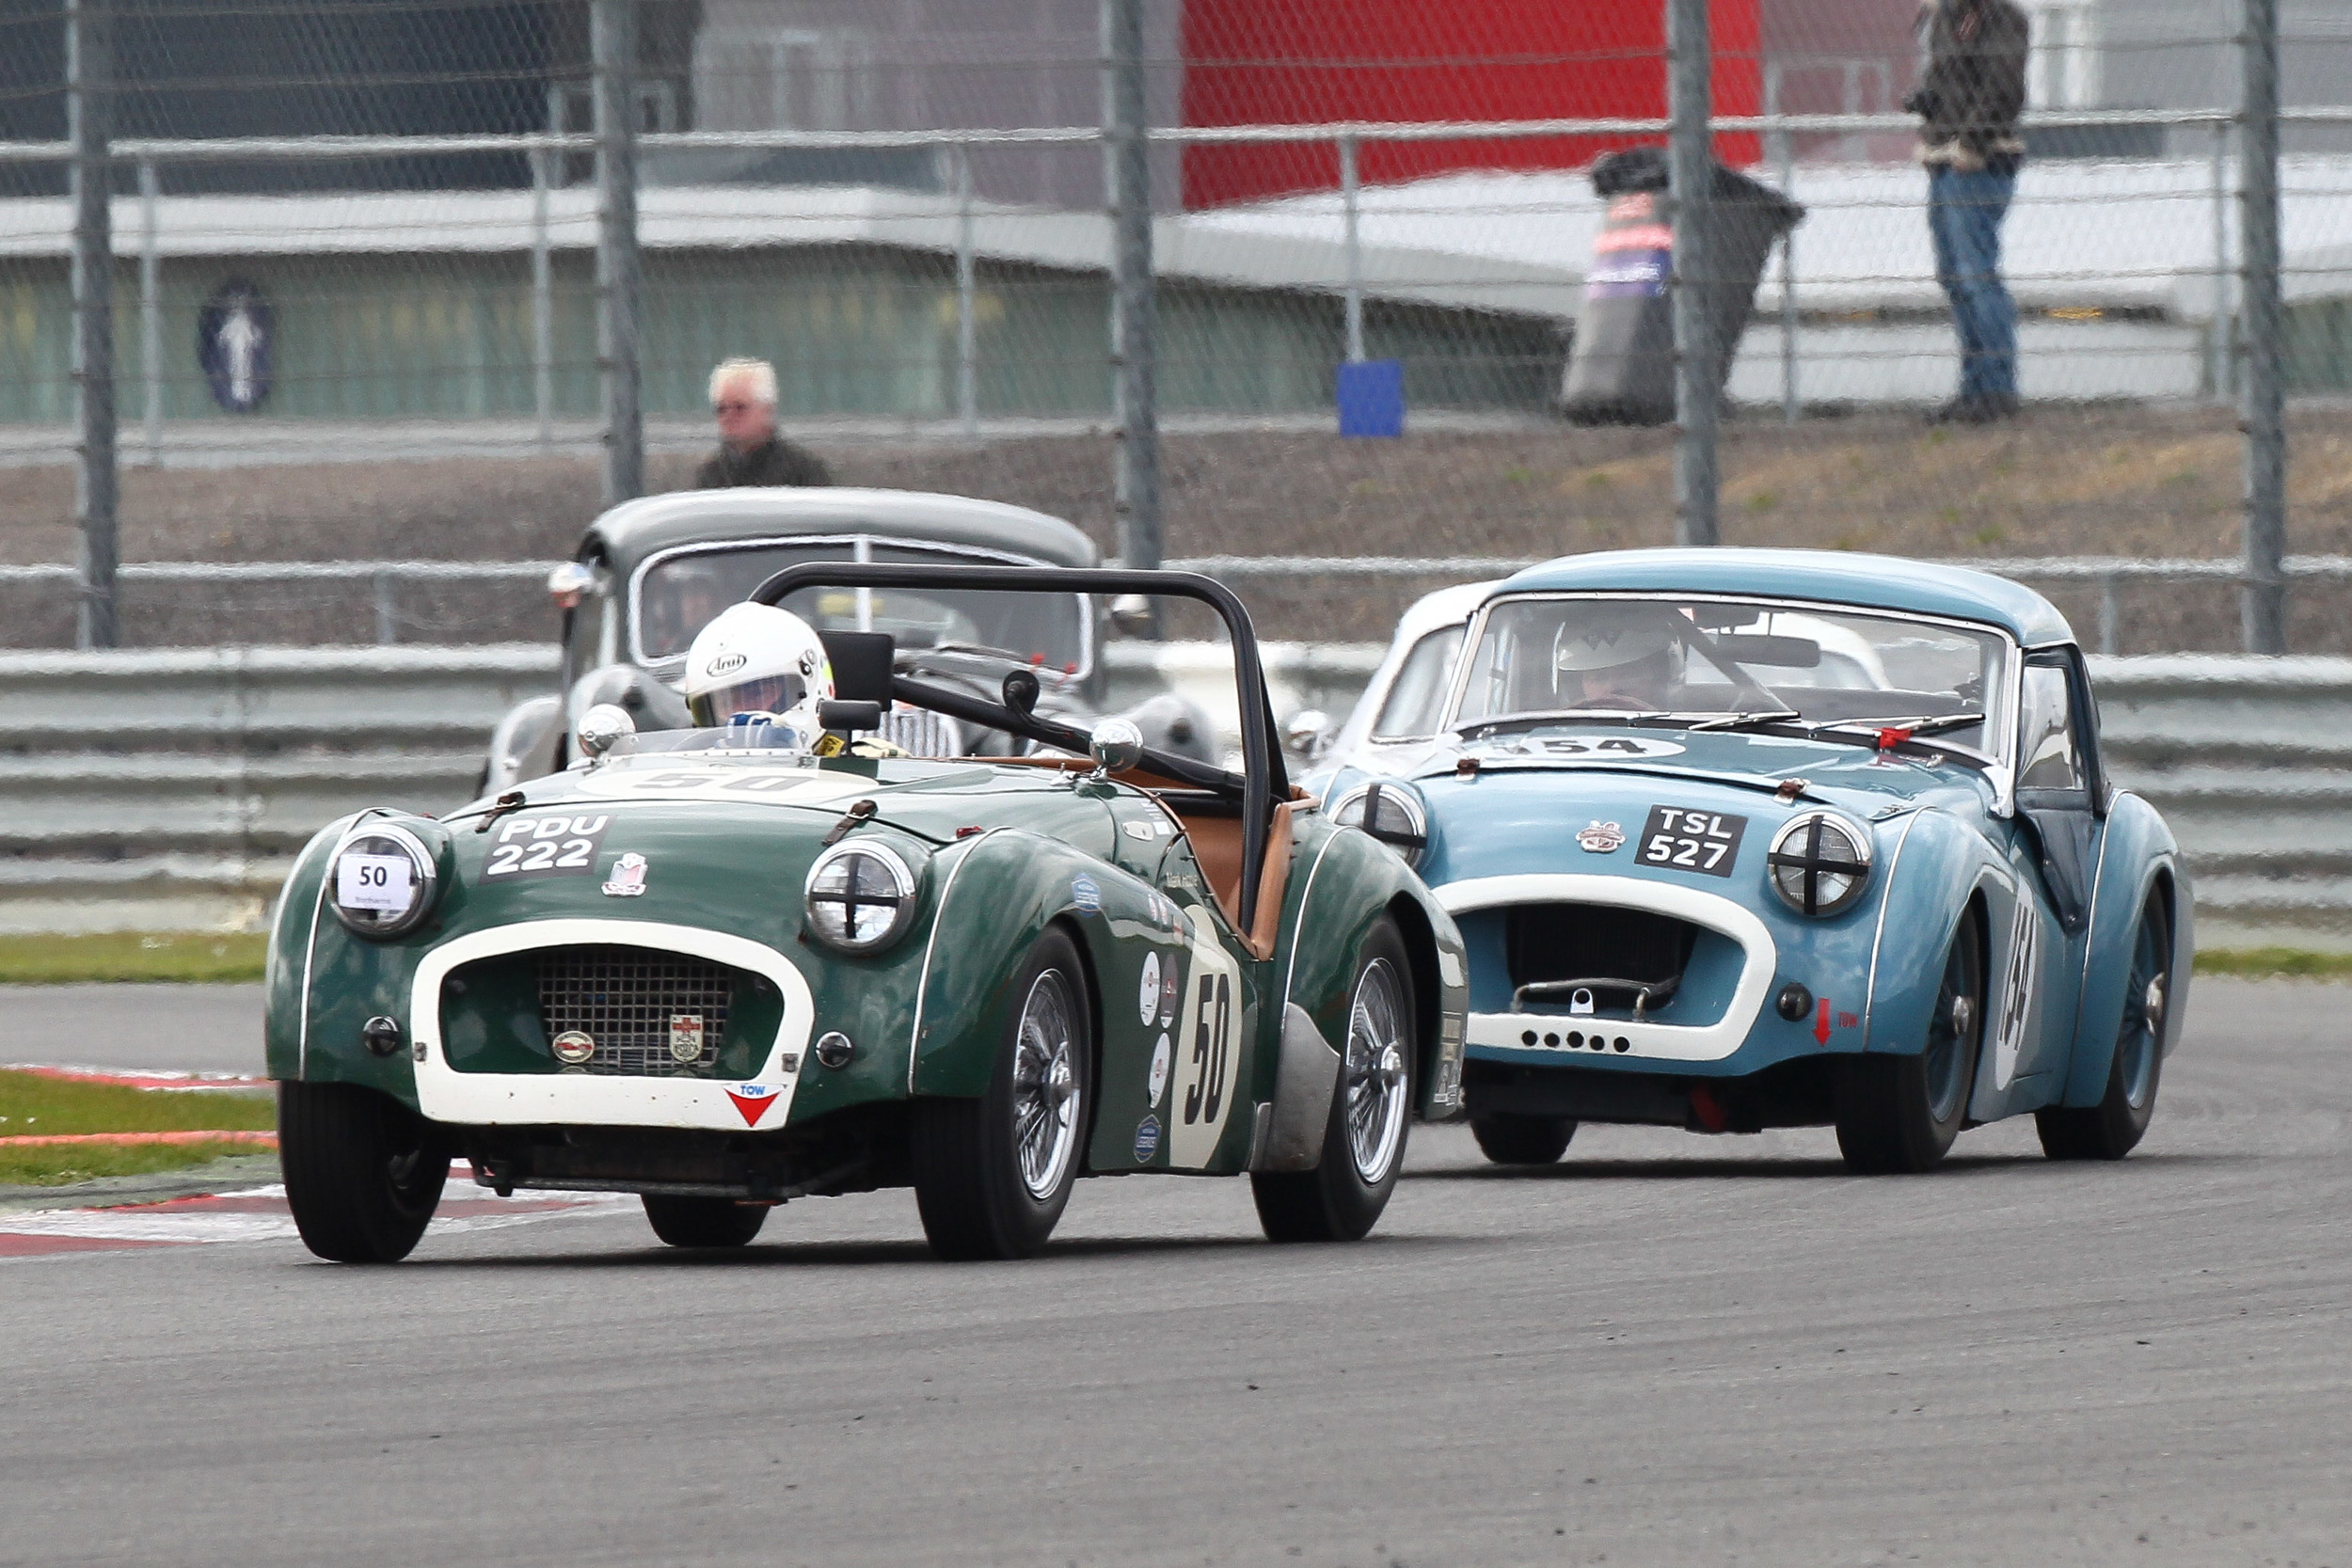 Mark Hoble and Paul Ziller, Triumph TR2s                                                          Photo - Richard styles